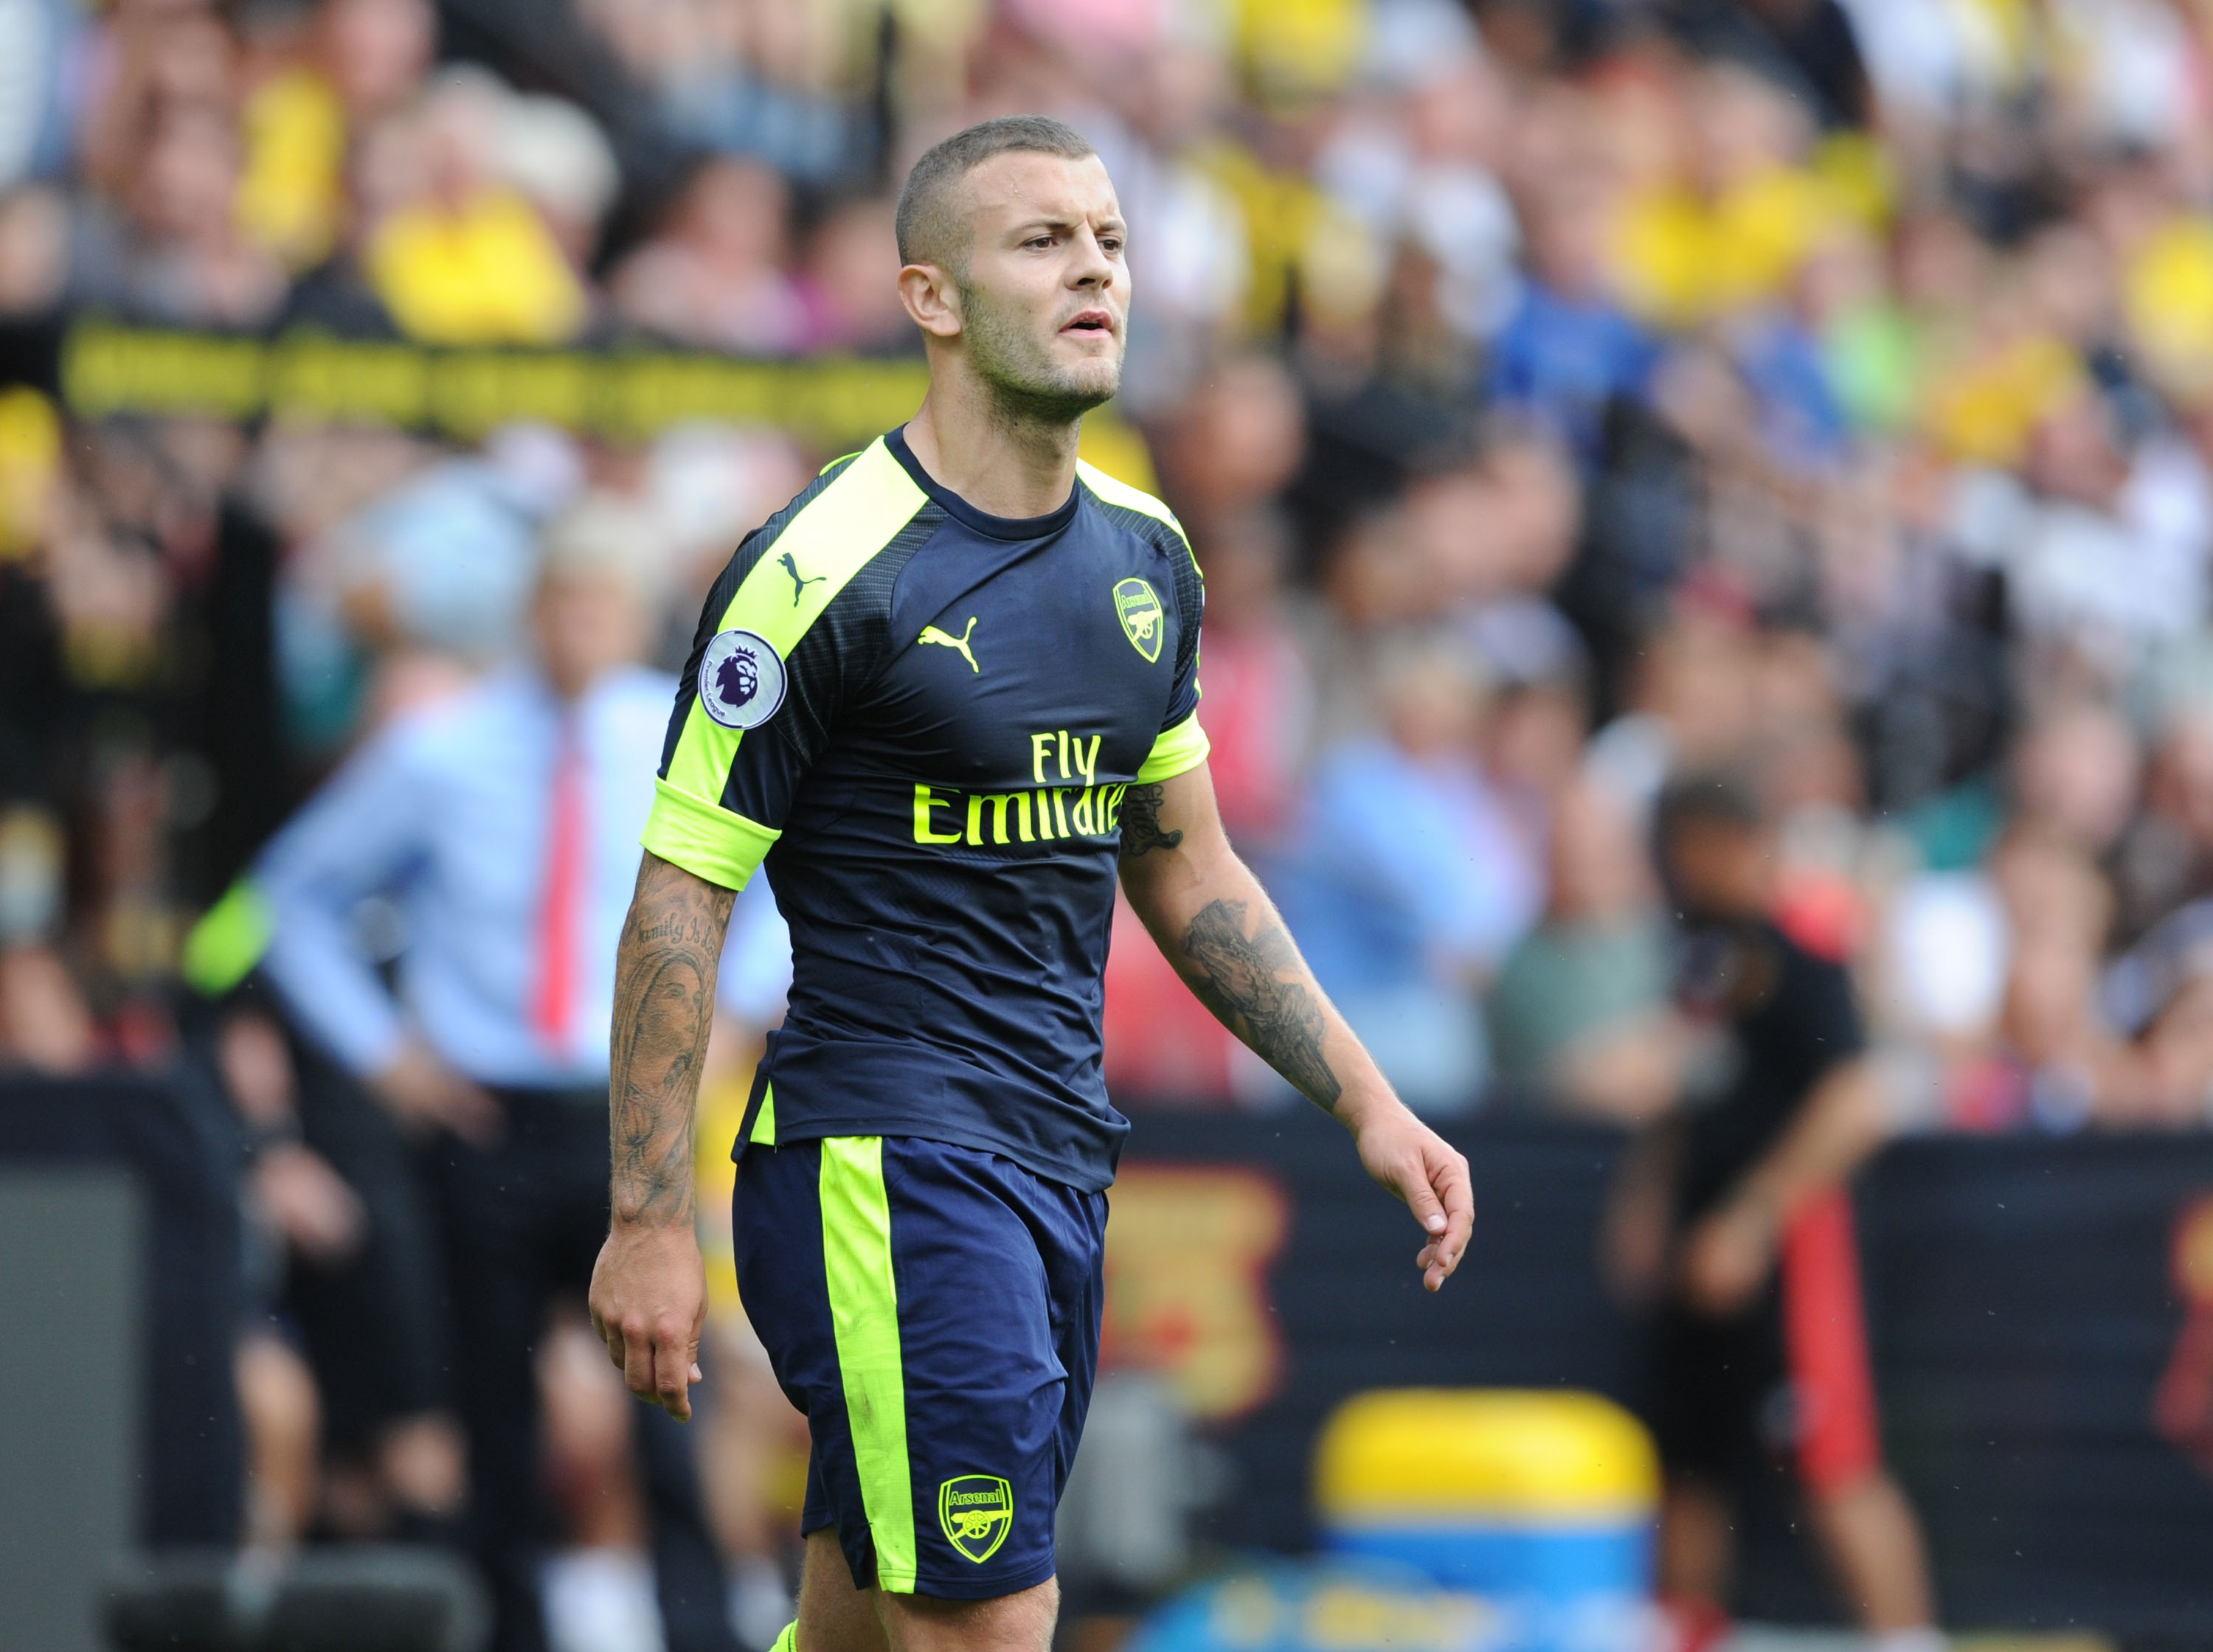 Arsenal: Is Wenger Justified In Claiming Wilshere Is World Class?